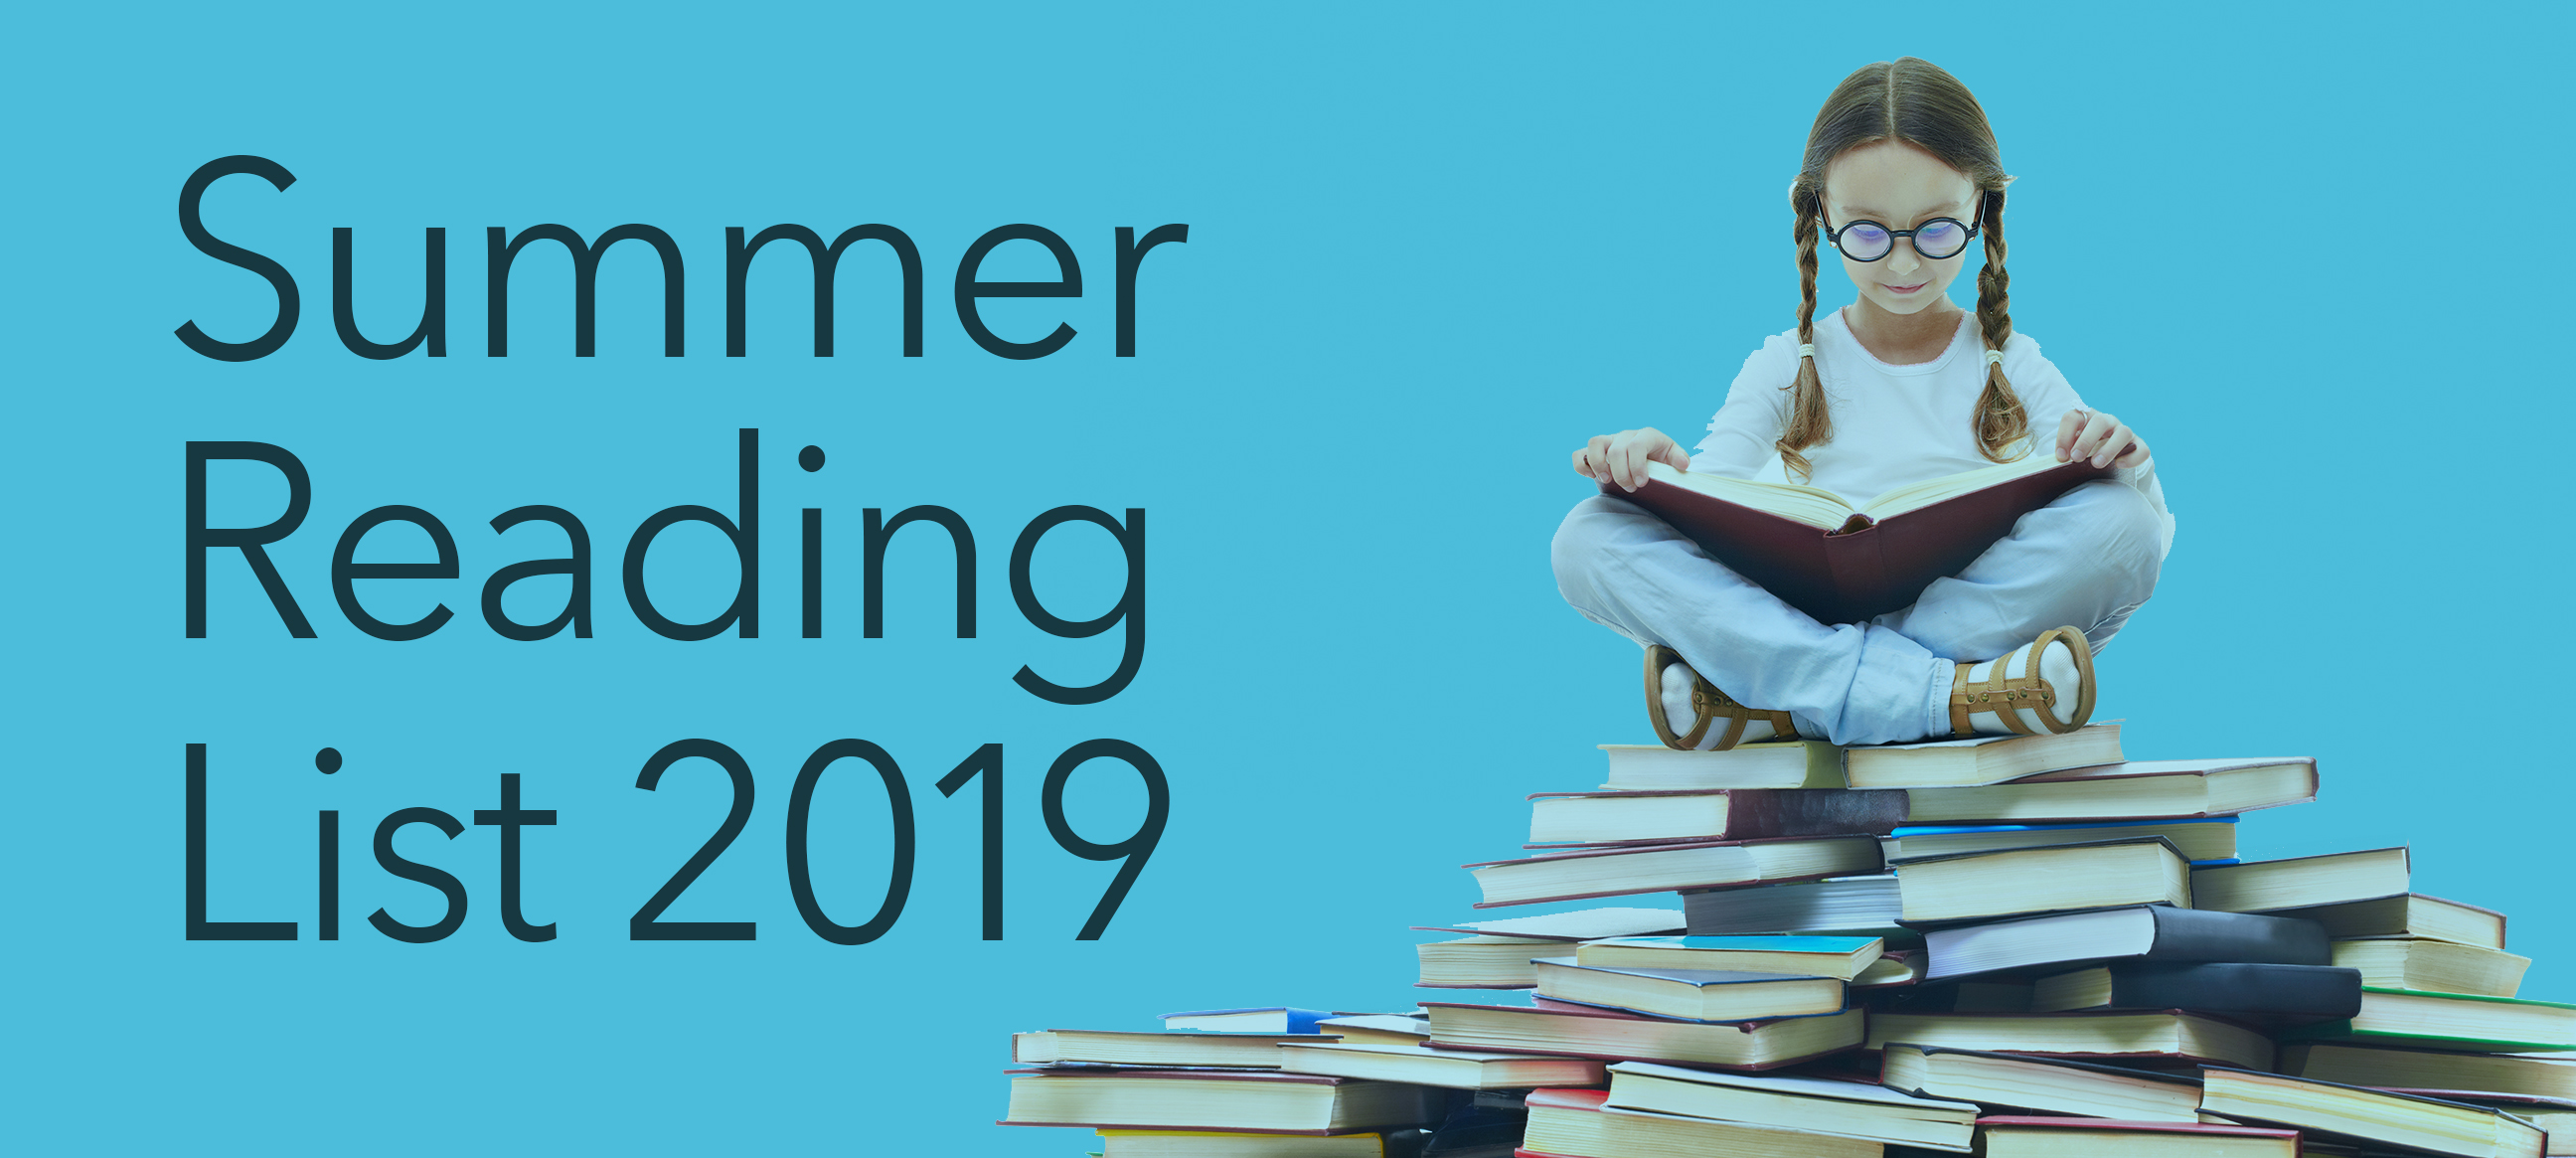 Let's keep reading over the summer holidays